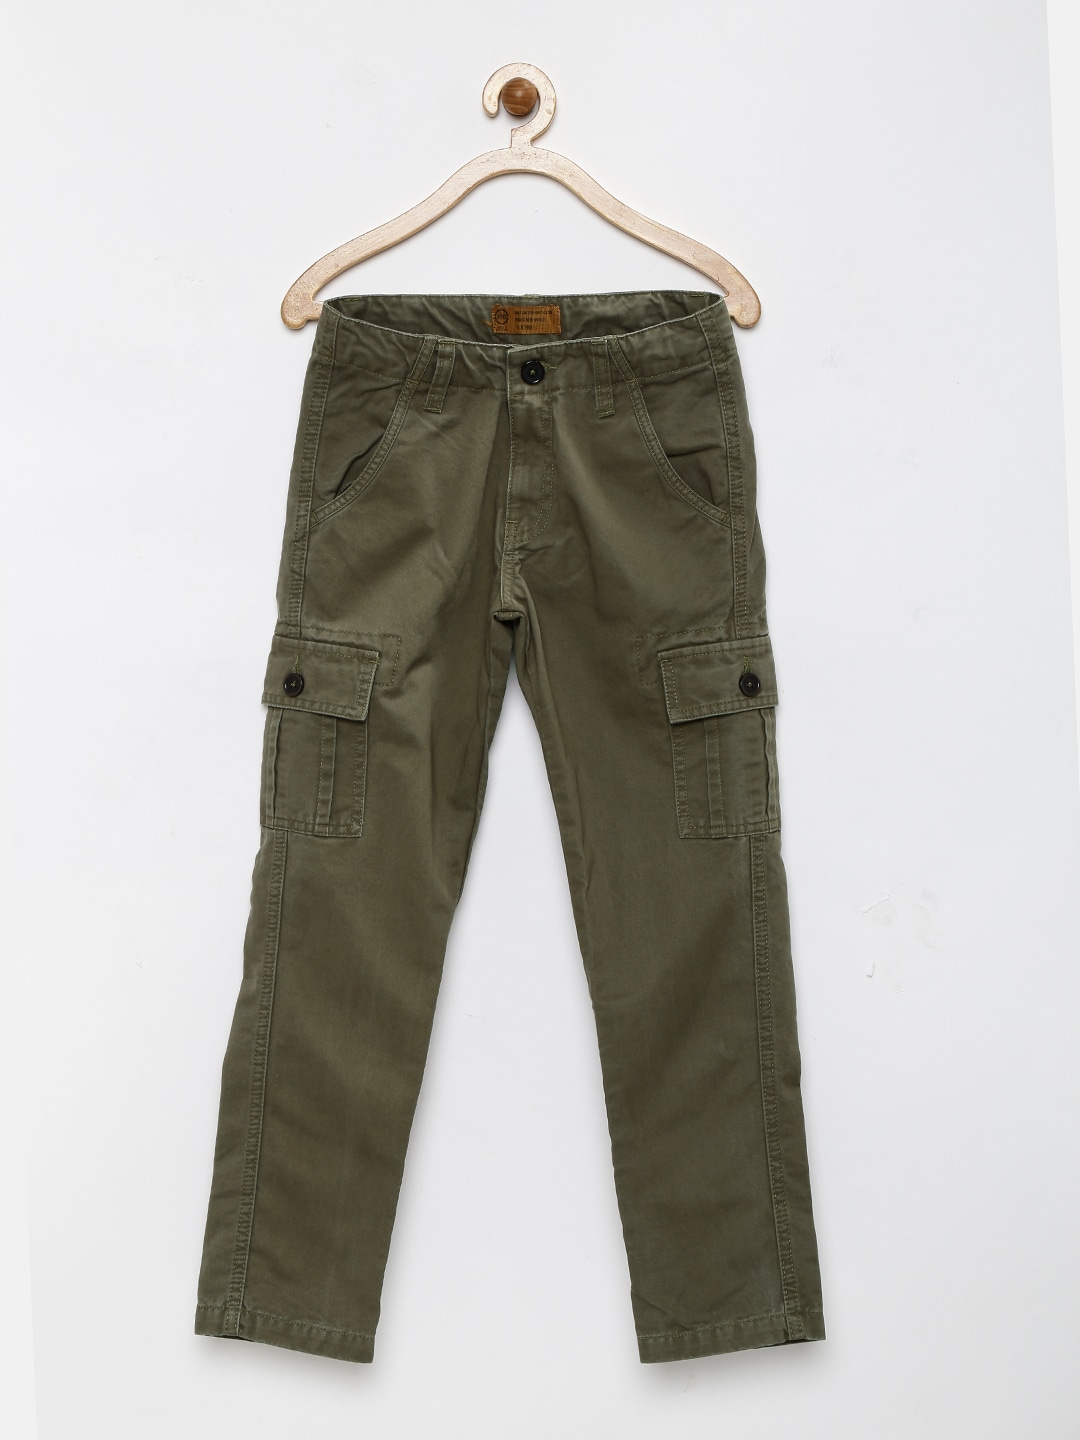 Rig O Cargo Caps Trousers - Buy Rig O Cargo Caps Trousers online ...